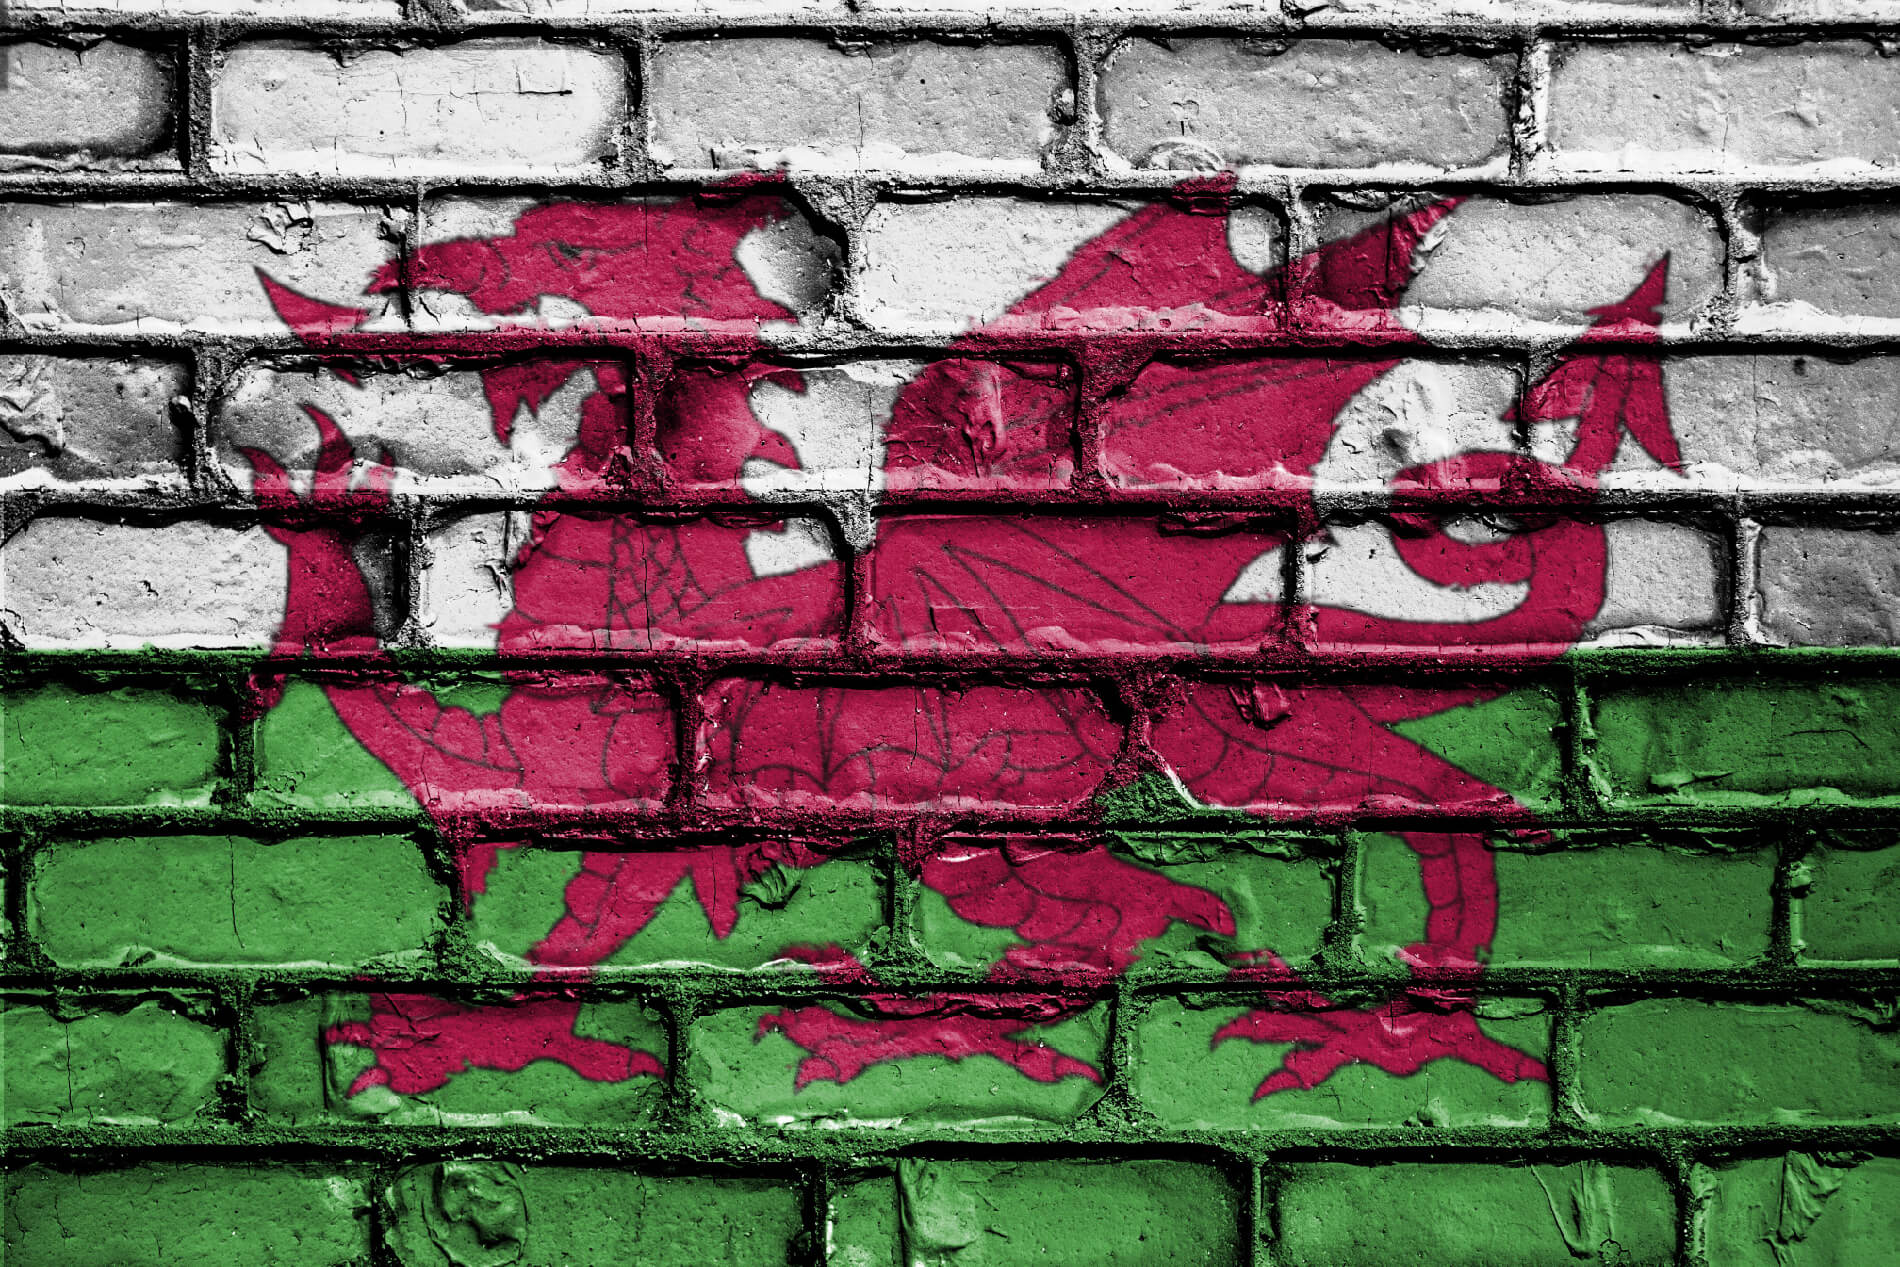 Descrimination of Muslims in Wales